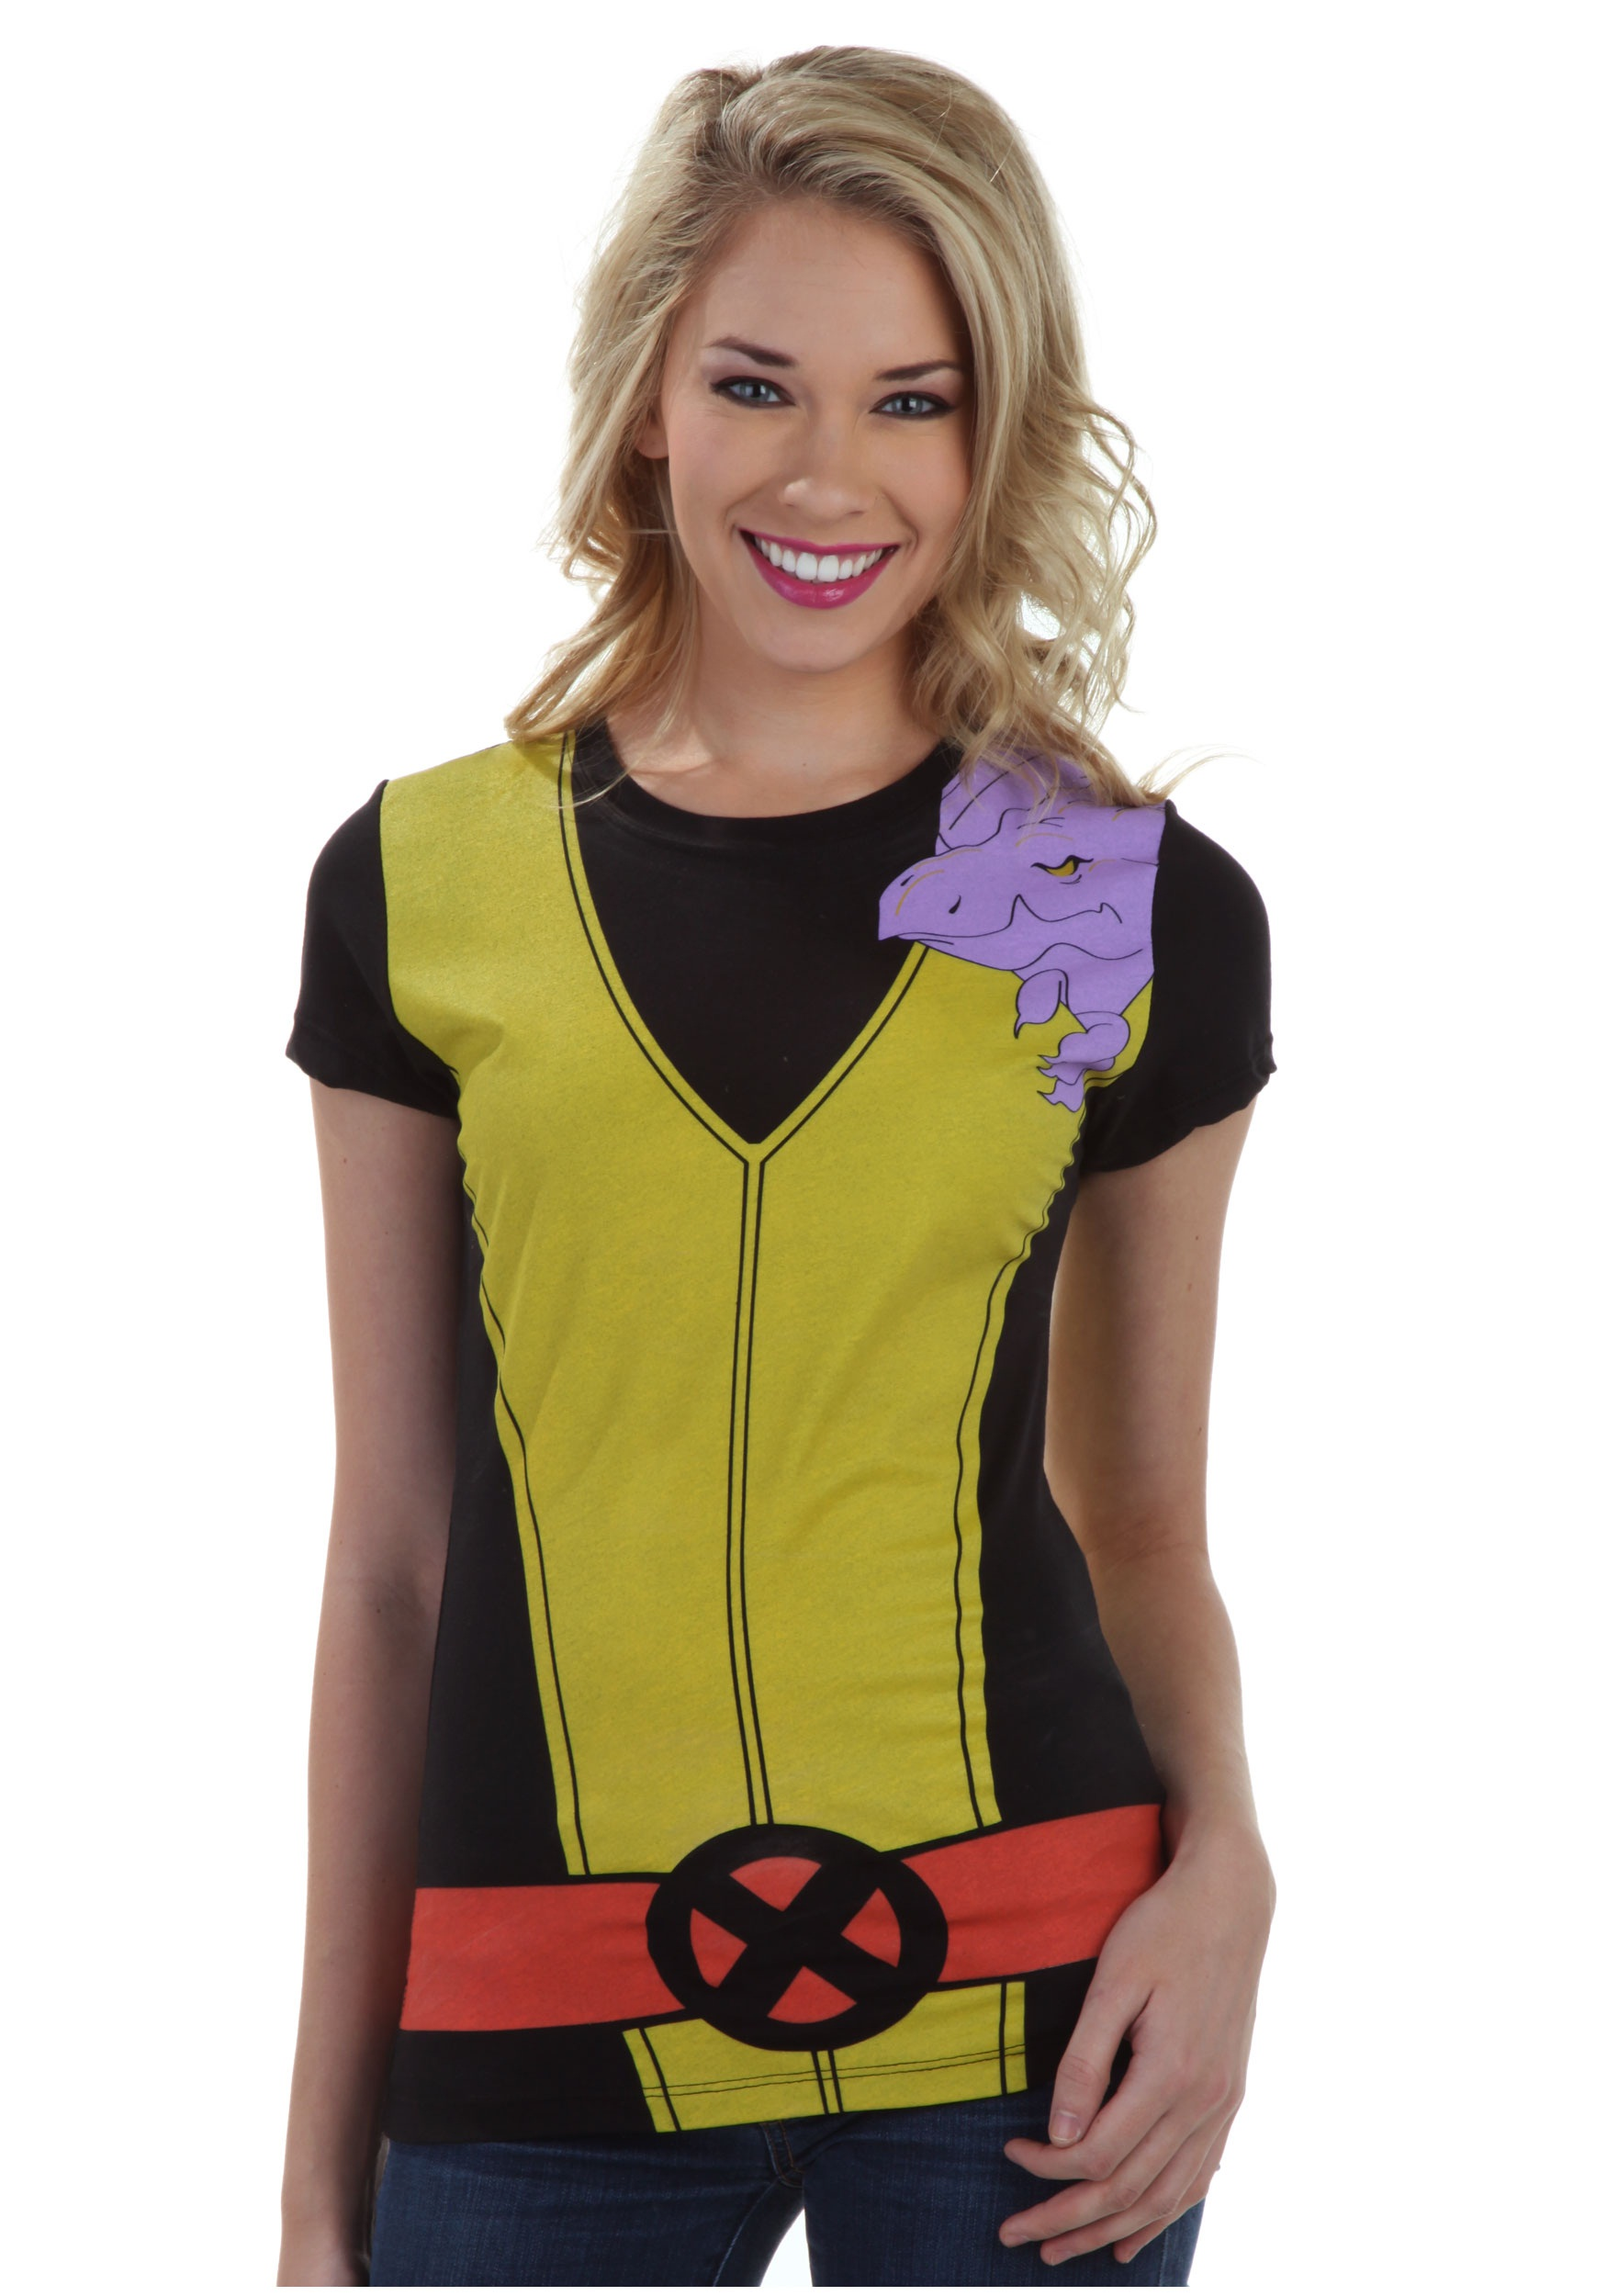 Womens kitty pryde lockheed costume t shirt halloween for Costume t shirts online